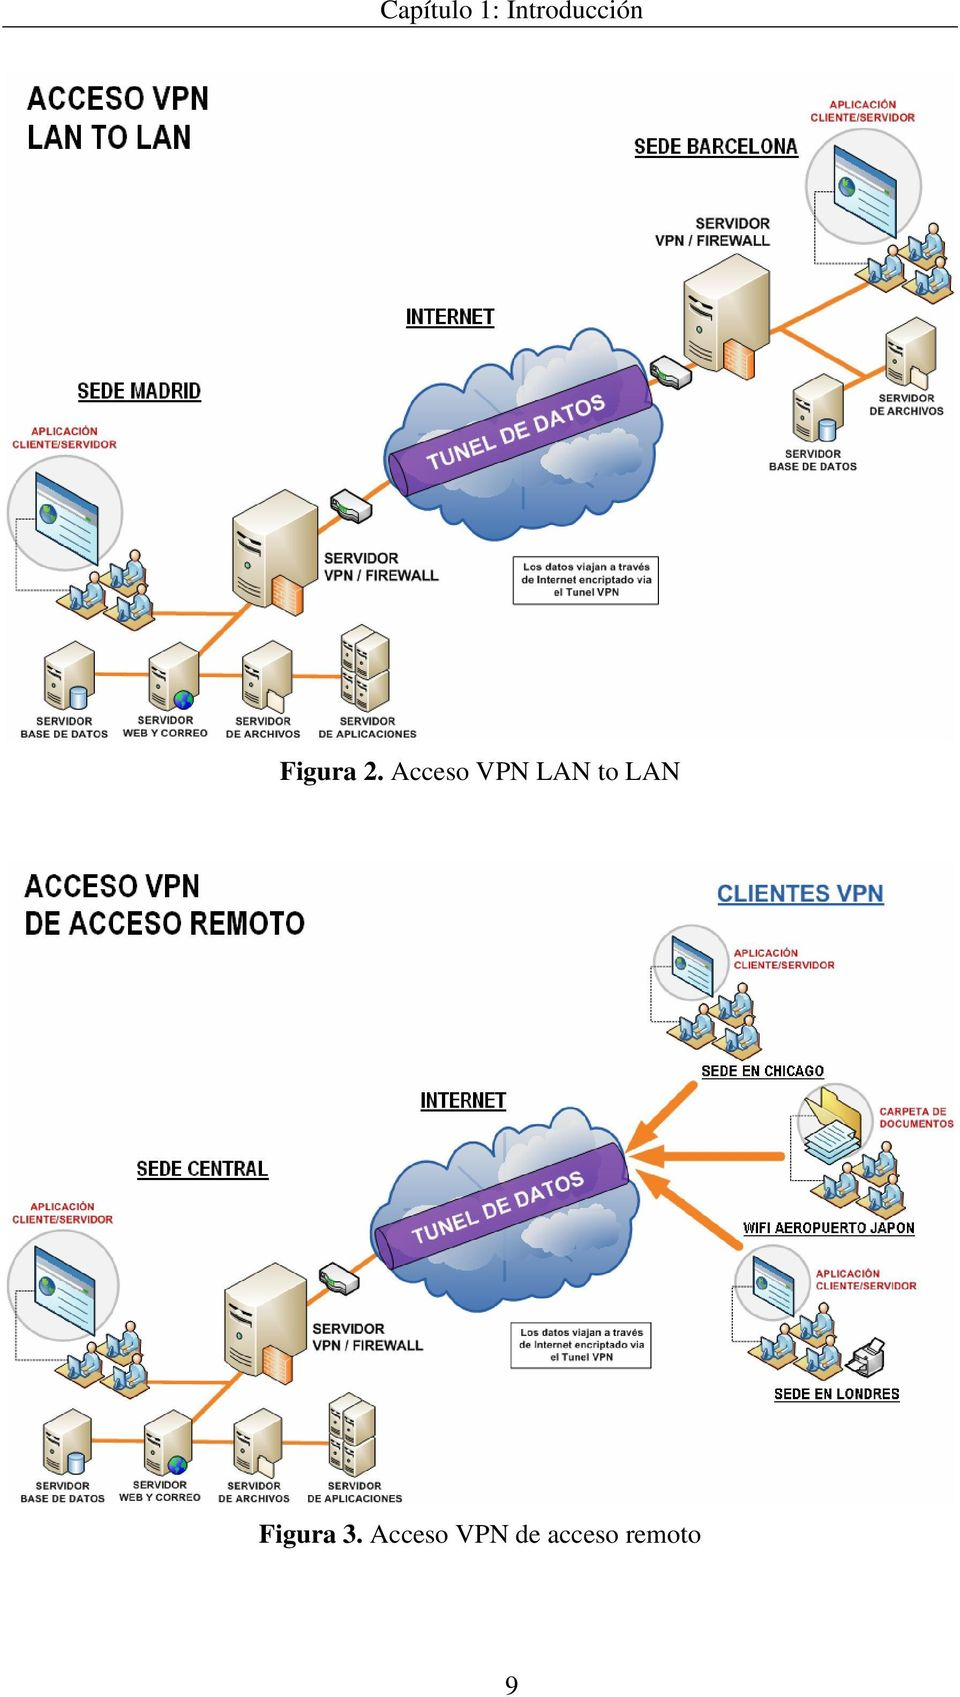 Acceso VPN LAN to LAN